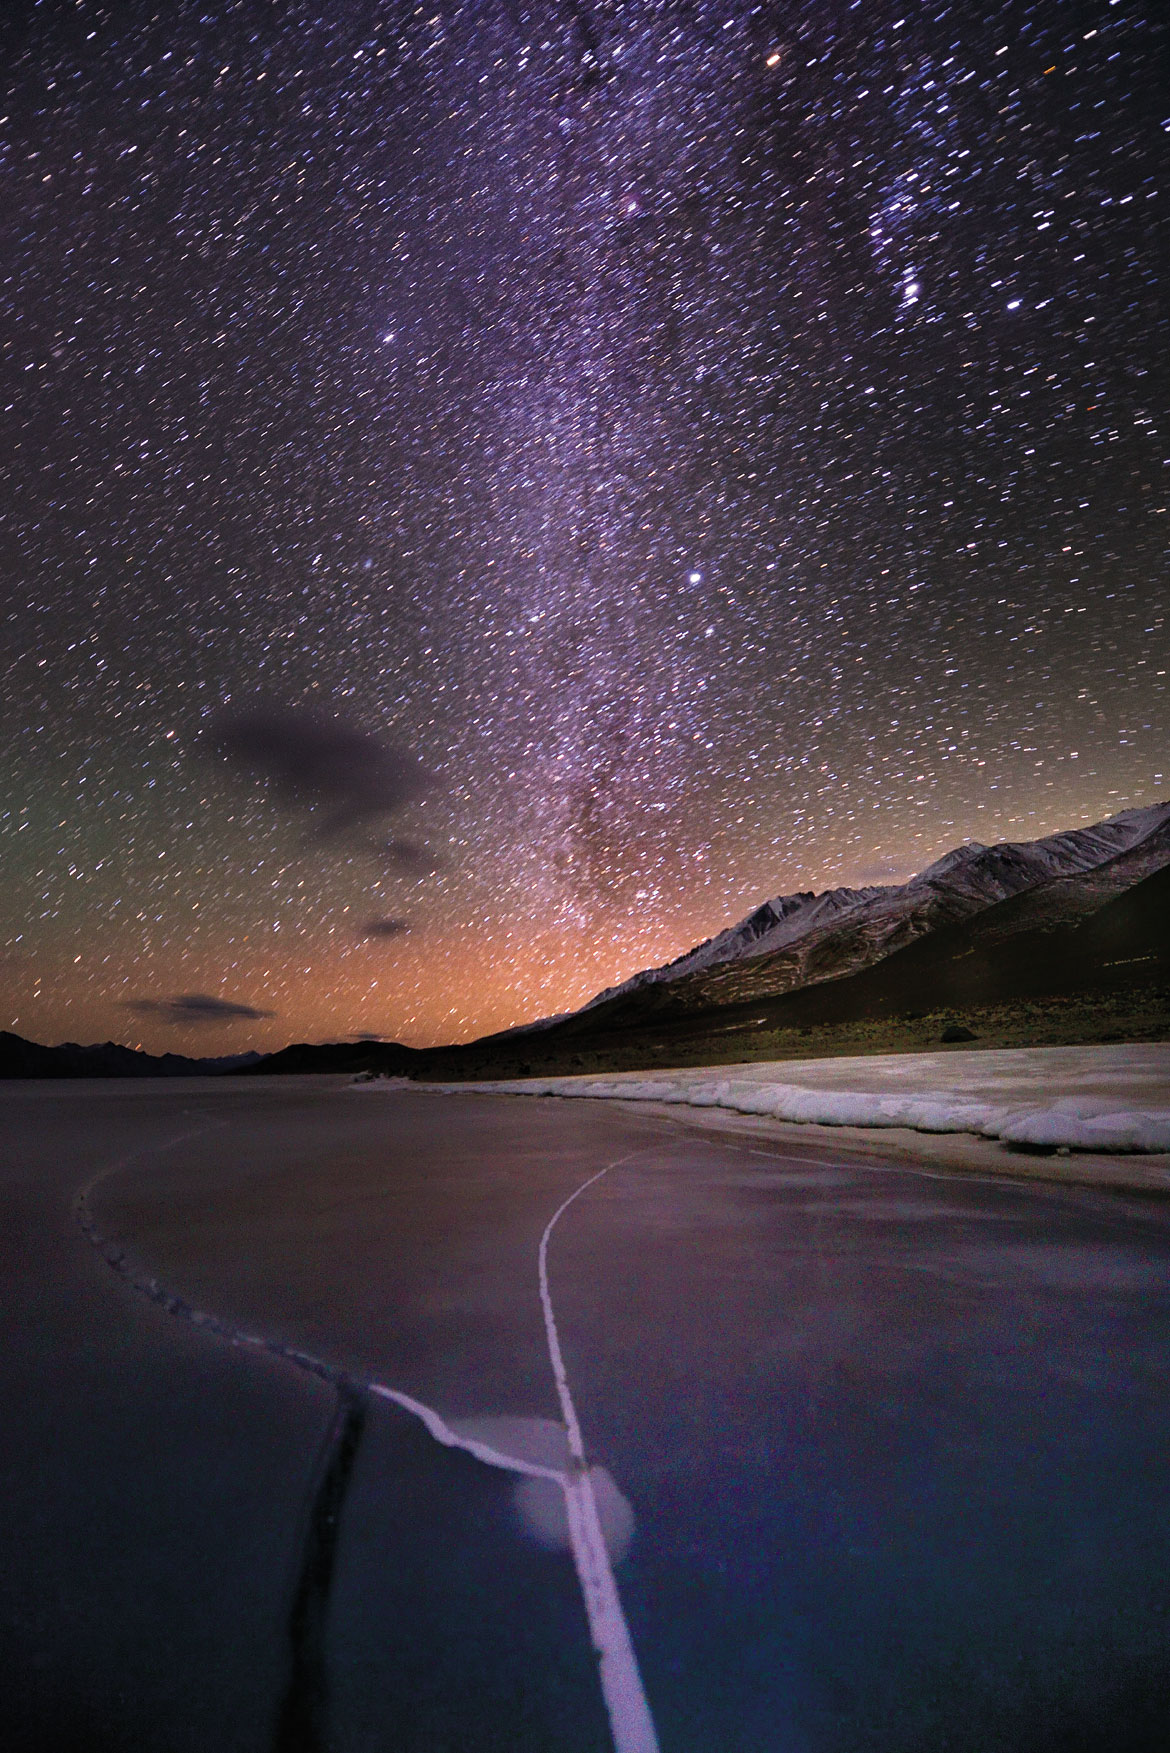 A crack on the frozen Pangong Tso reflects the Milky Way that arches over it. Cloudless new moon nights on the Changthang are often bright enough for stars to paint the lake ice